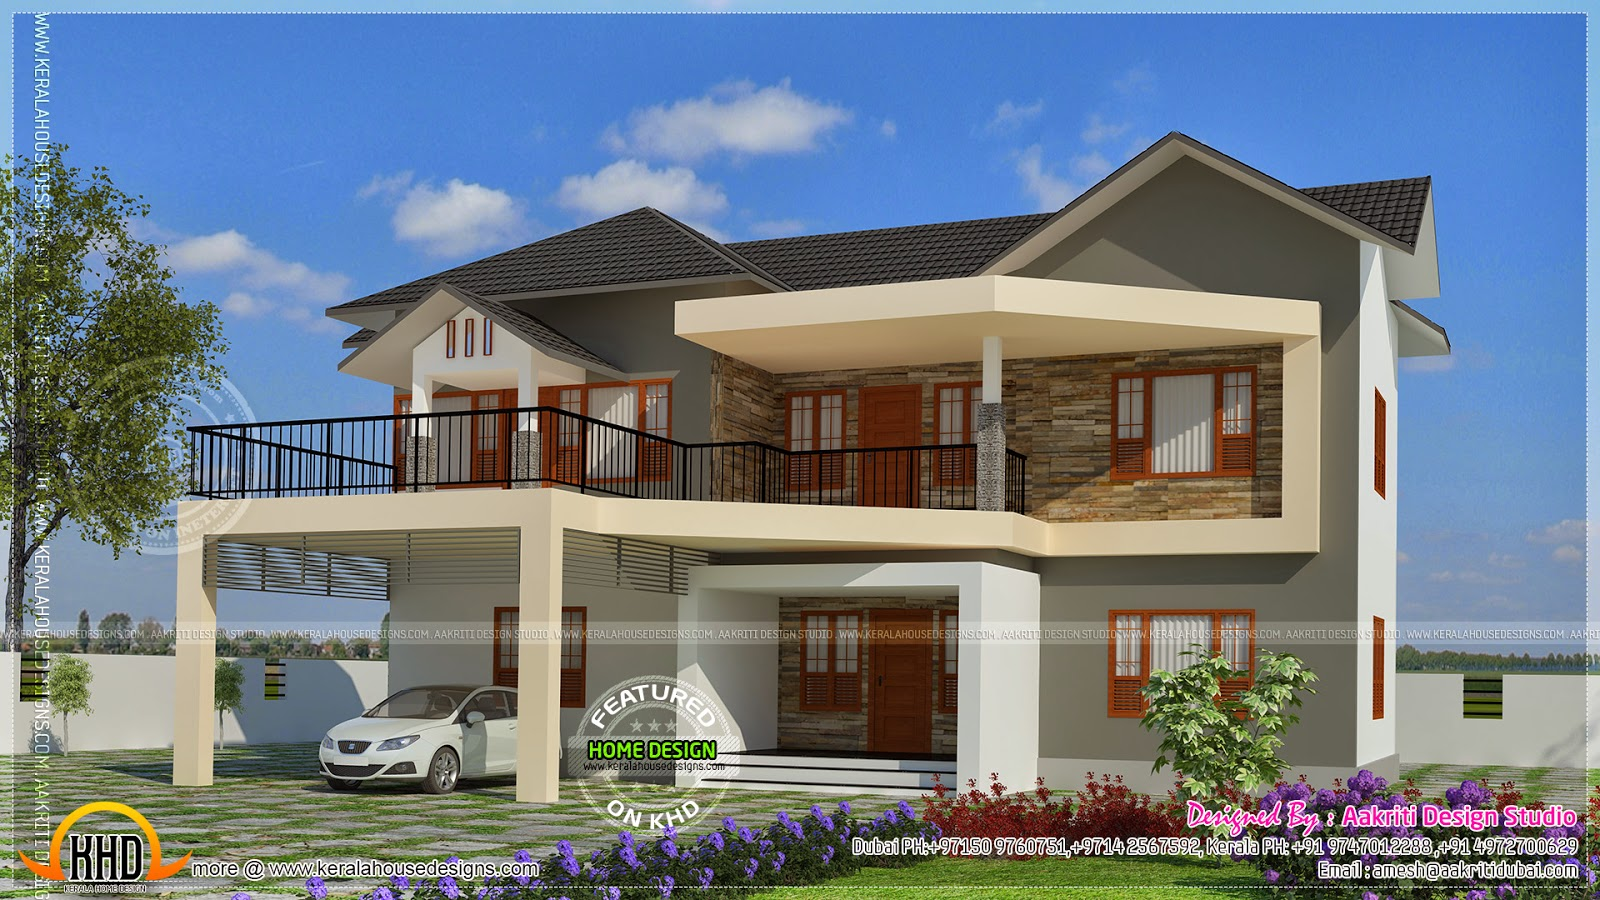 Elegant villa exterior kerala home design and floor plans Villa designs india